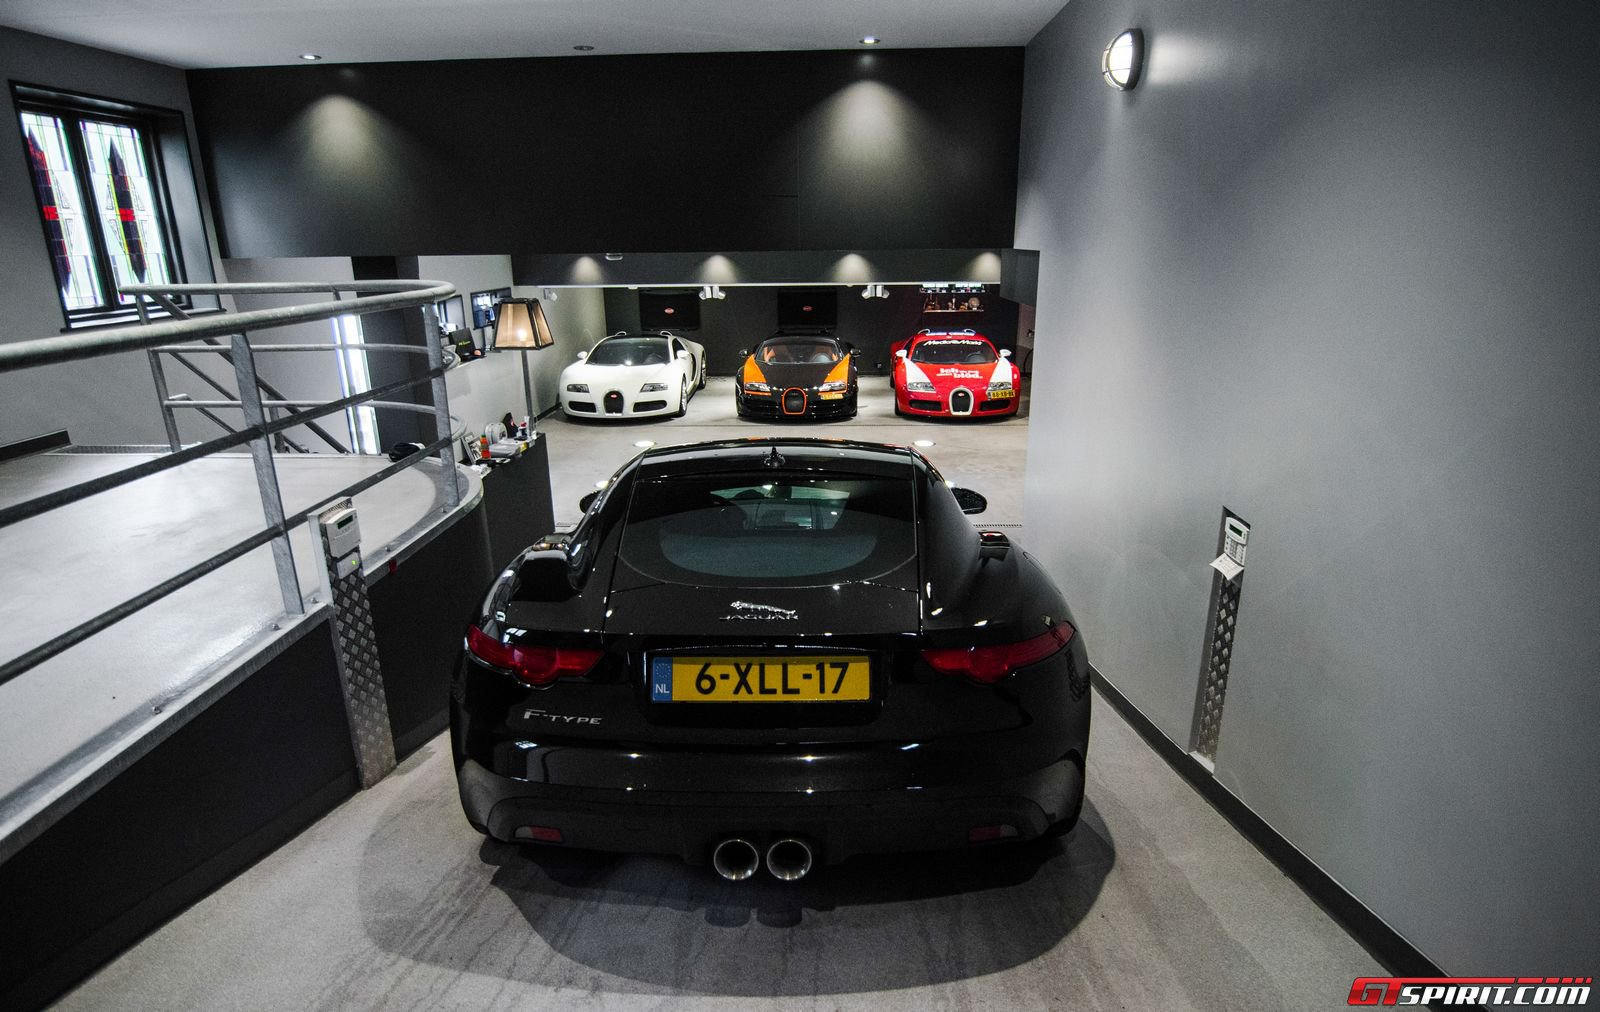 Bmw Garage Rotterdam : Luxury lifestyle photoshoot in rotterdam the netherlands gtspirit